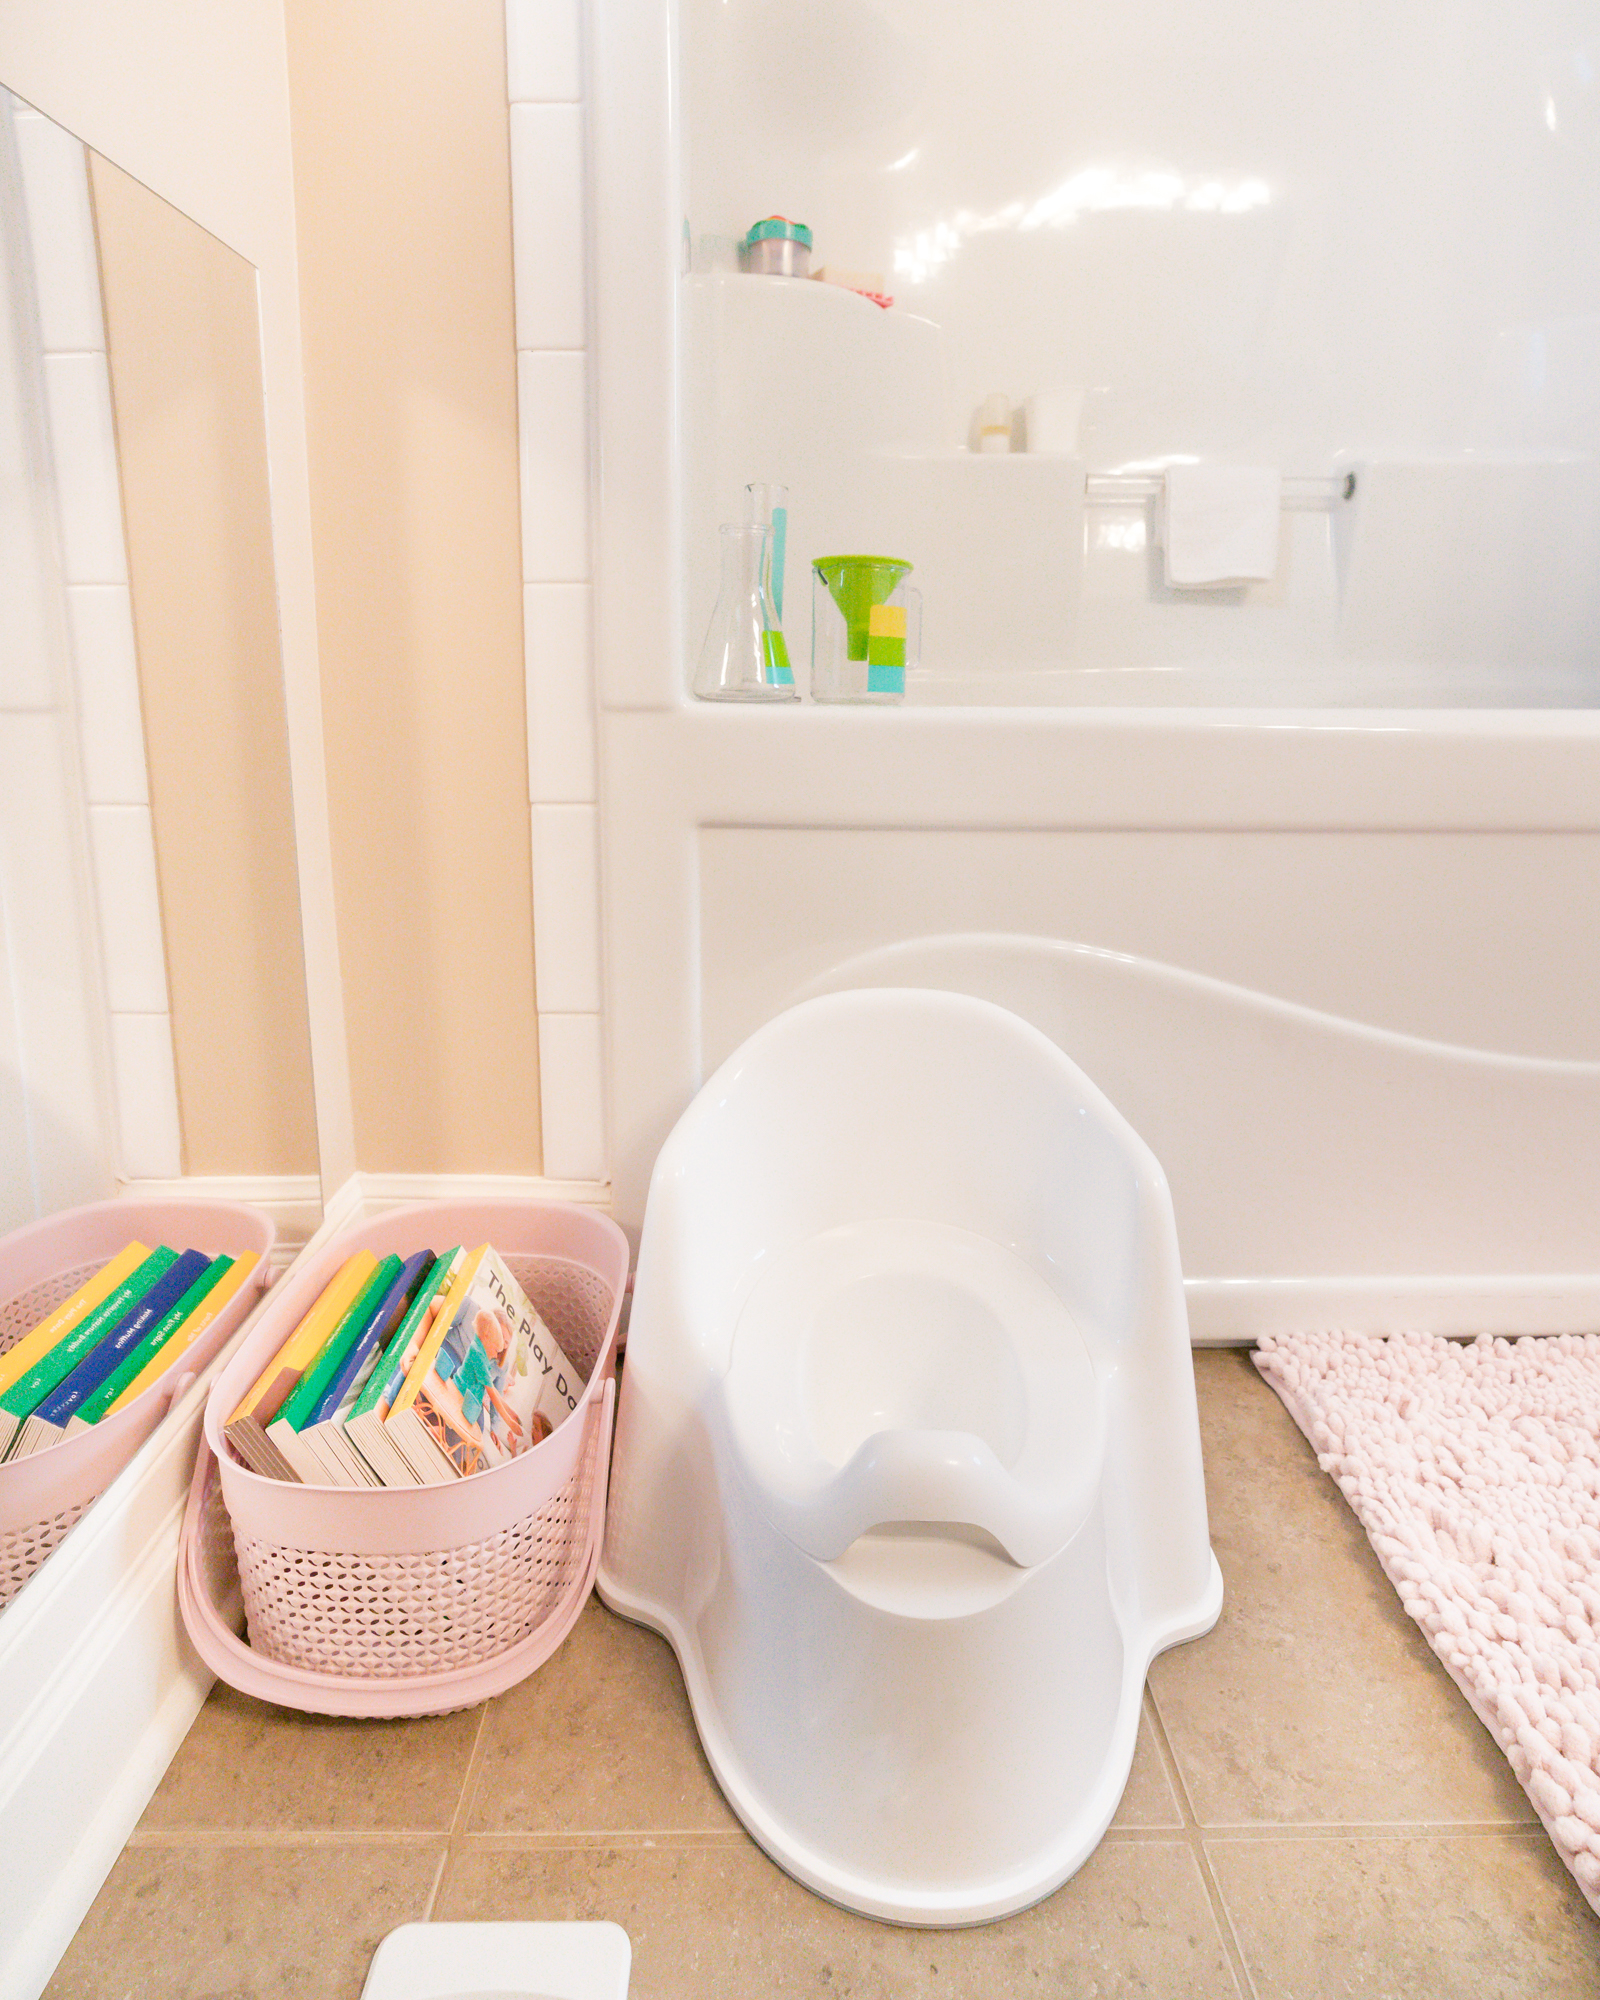 Potty seat and a basket of books next to a bathtub in a bathroom